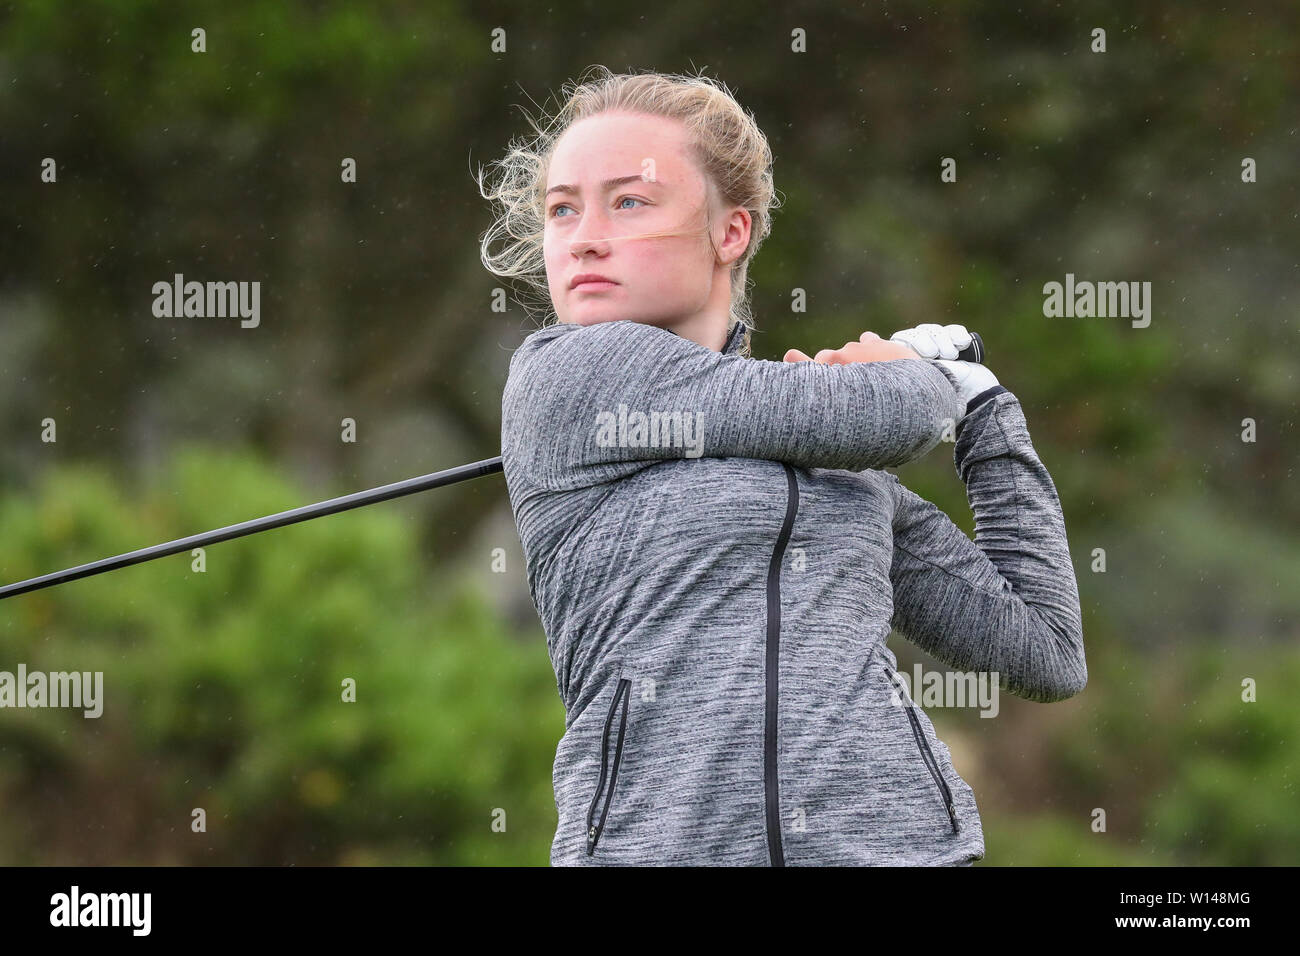 Troon, Scotland, UK. 30th June 2019. On the final day of the Competition the remaining 8 golfers, playing matchplay golf competed over Barassie Links Golf course, Troon in blustery wind and squally rain conditions to try and win the Championship Cup and the Clark Rosebowl.Image of KIMBERLEY BEVERIDGE representing Aboyne Golf club teeing off at the 17th Credit: Findlay/Alamy Live News - Stock Image